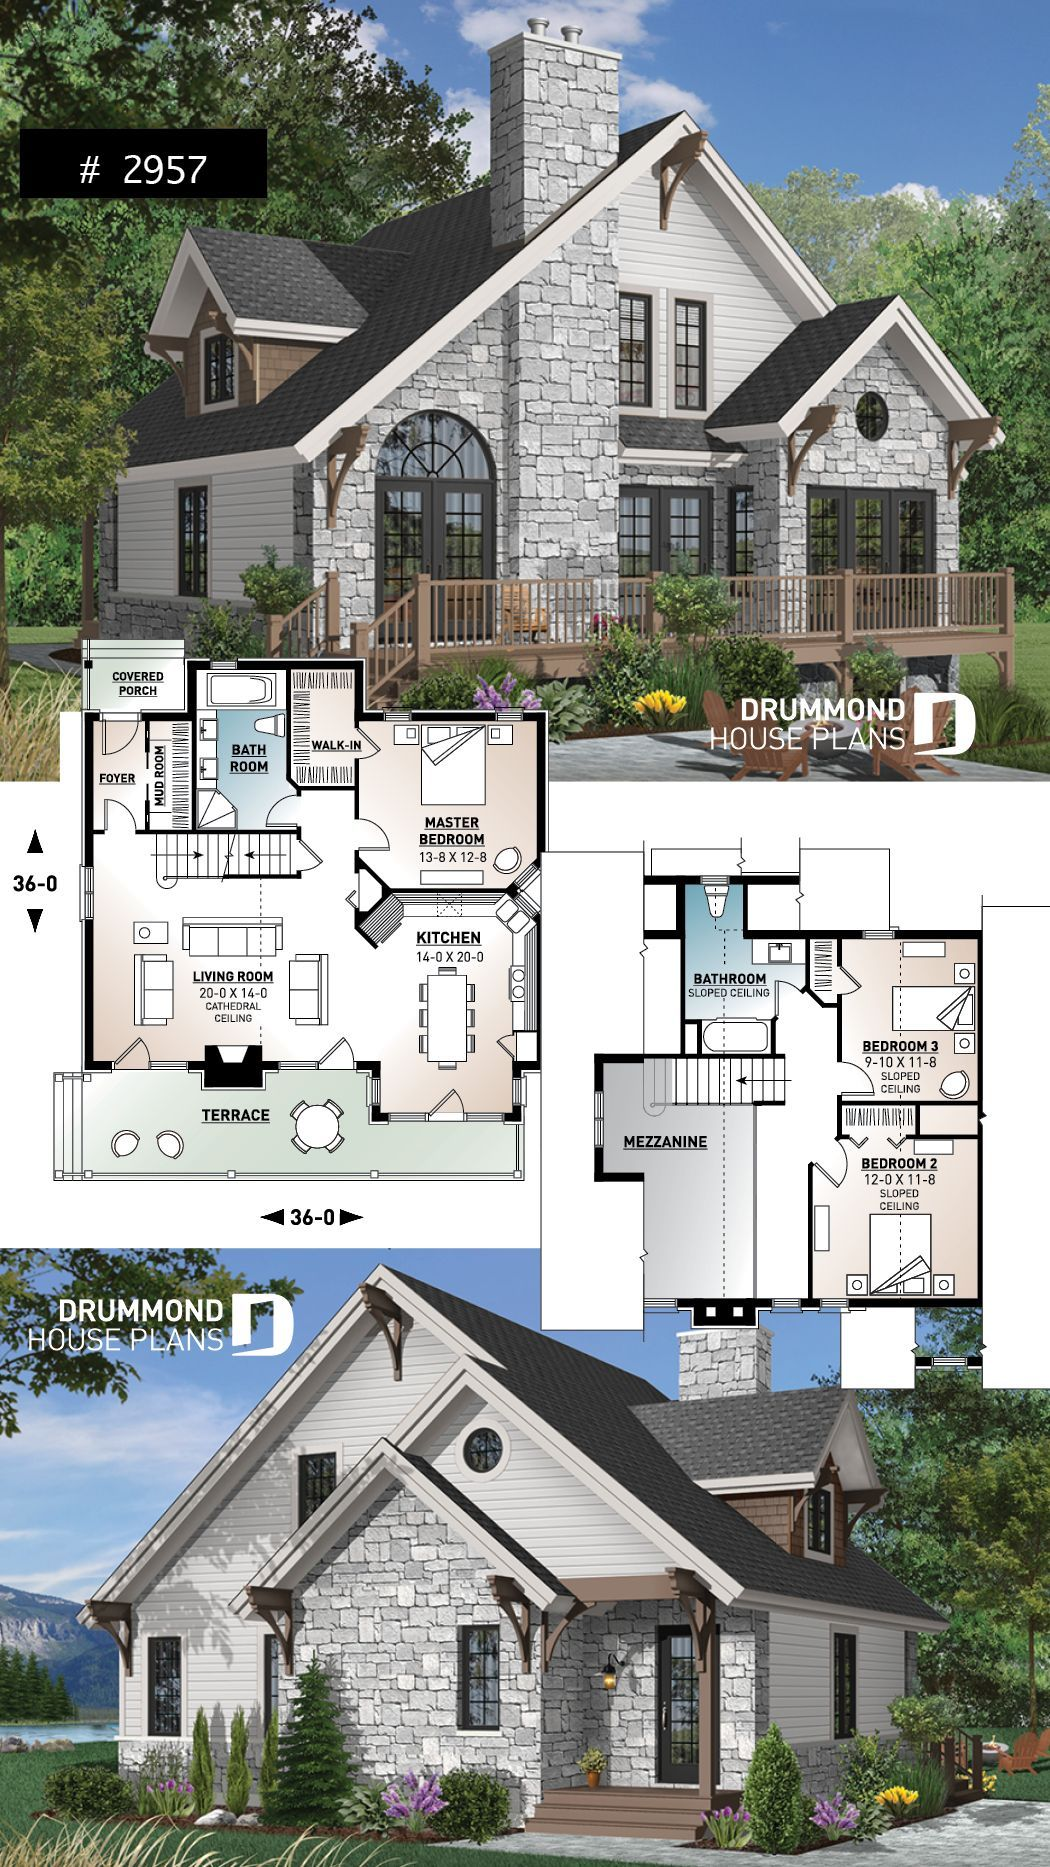 Northwest Style Cottage House Plan 3 Beds Large Terrace Mezzanine Fireplace And Open Floor Plan Concept Cozy Chal House Blueprints Home Fashion Ev Plani